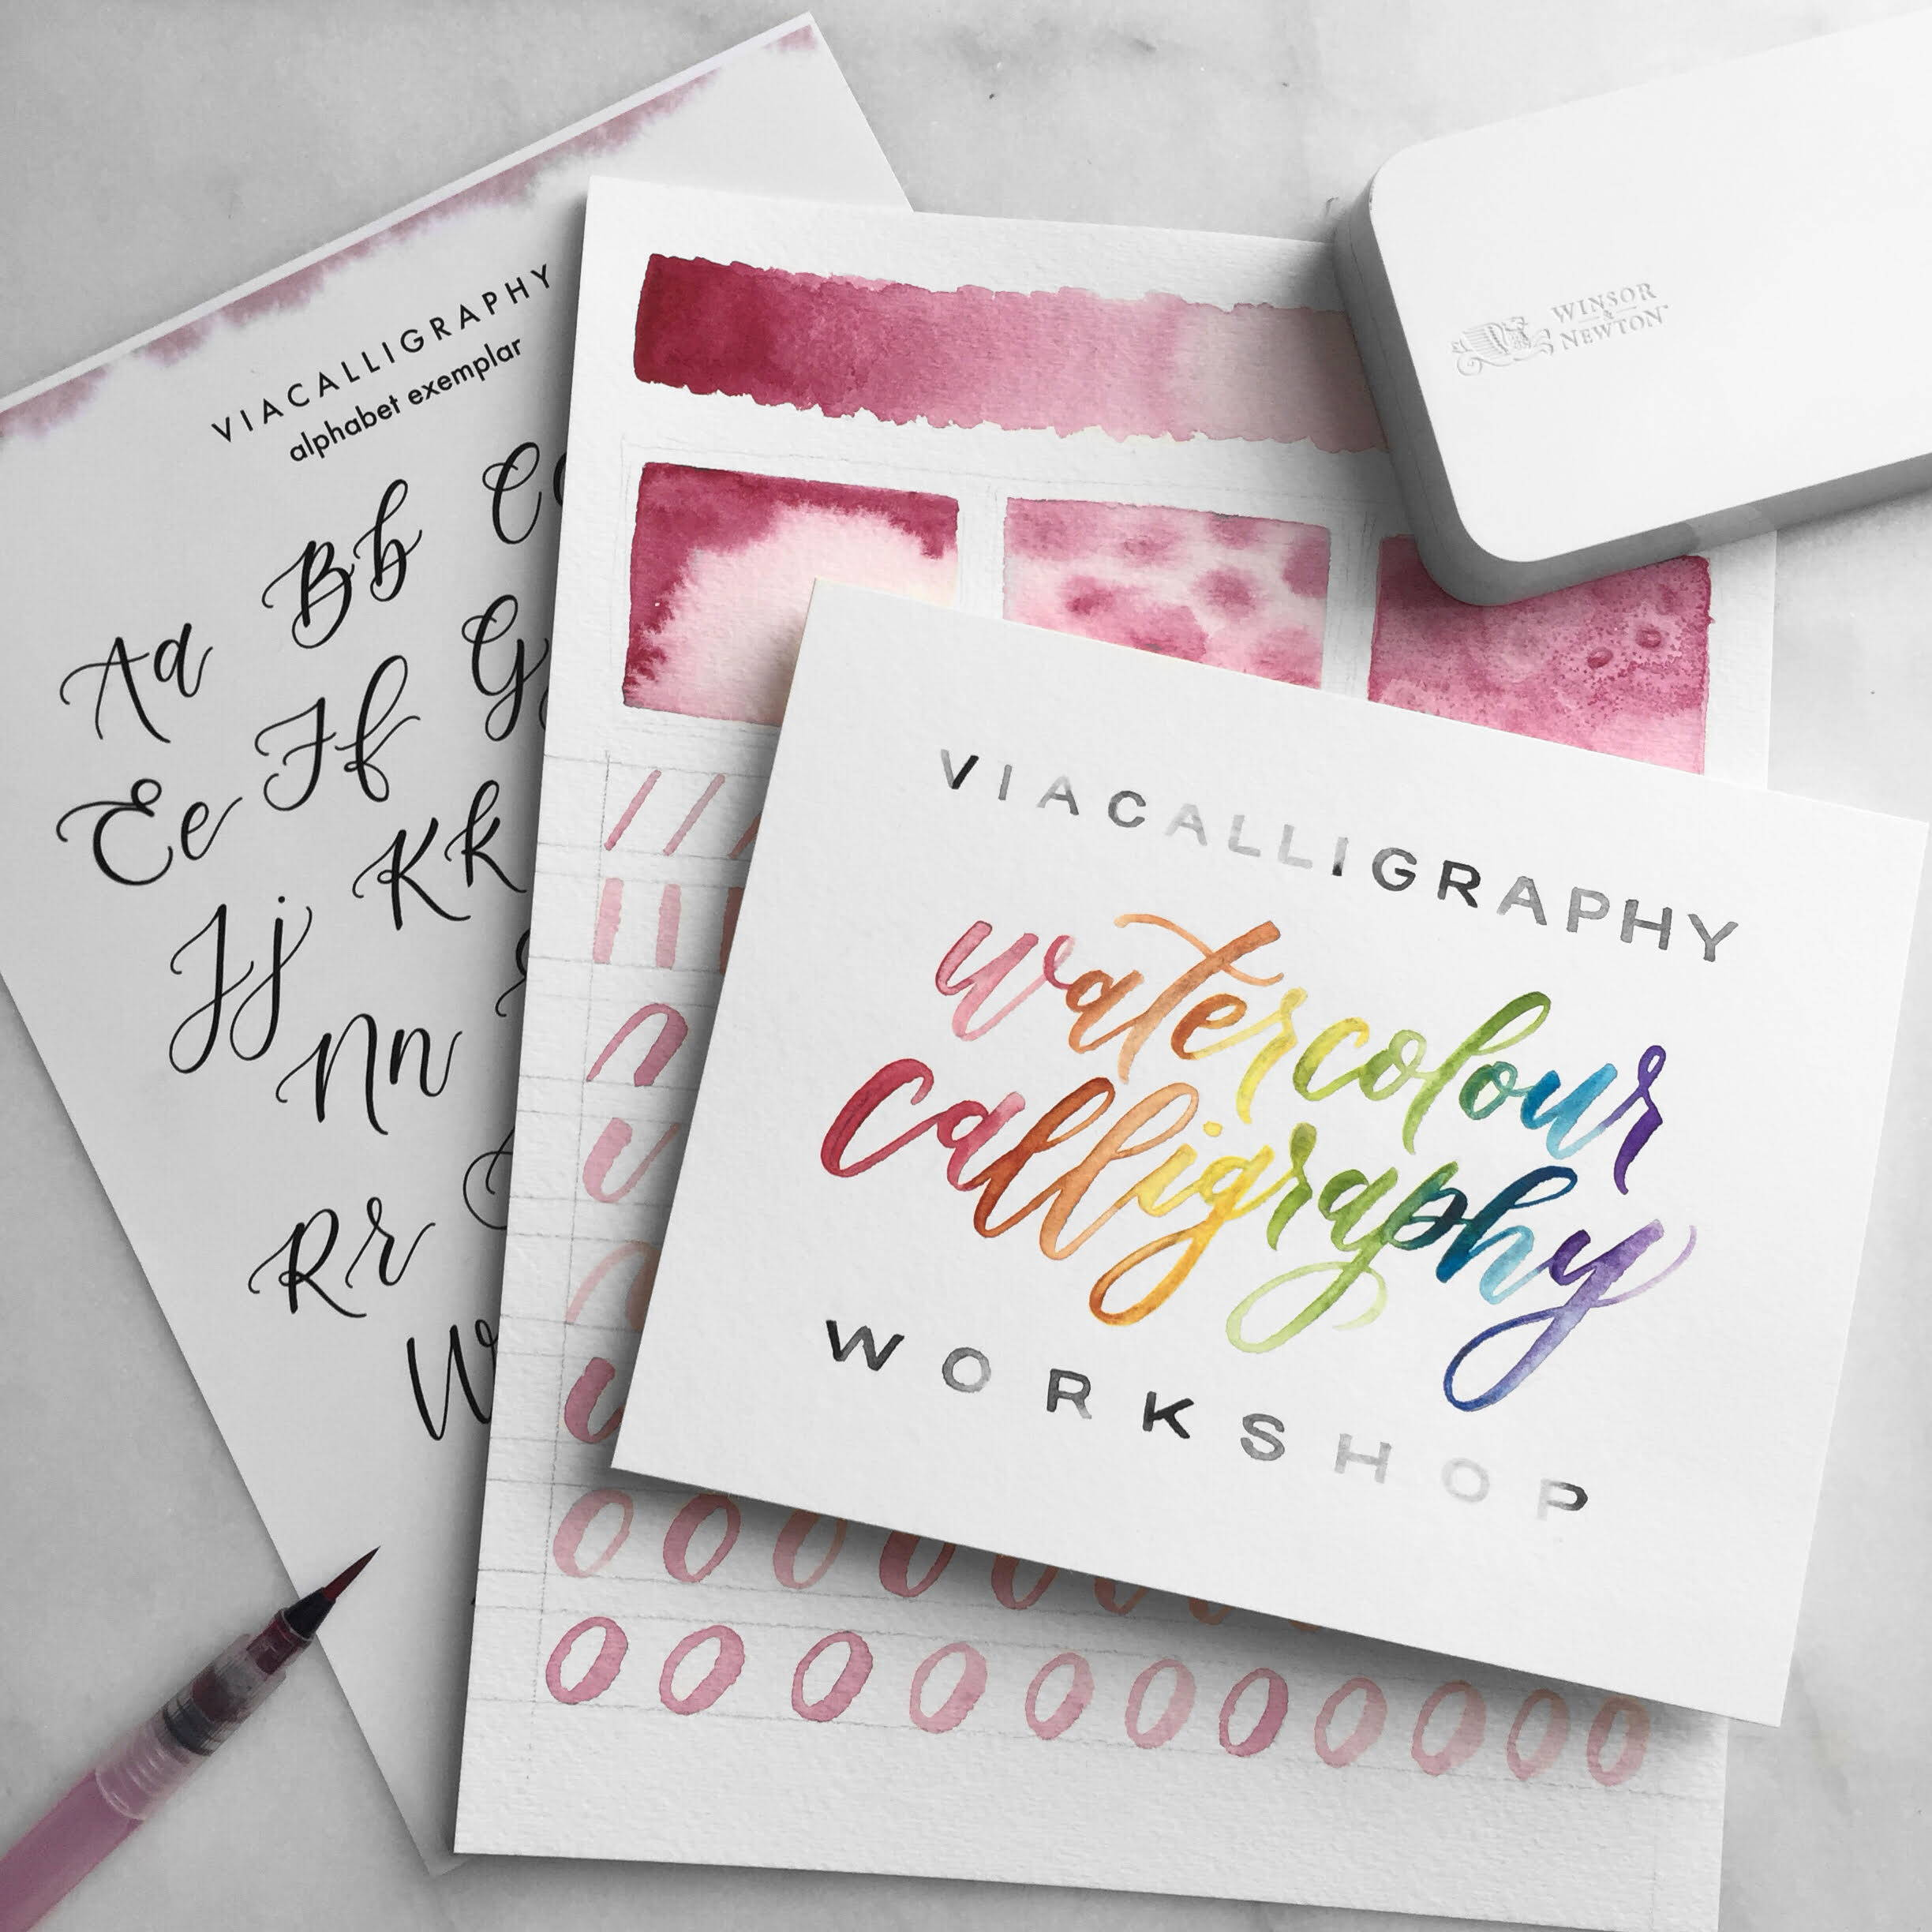 watercolour calligraphy classes toronto